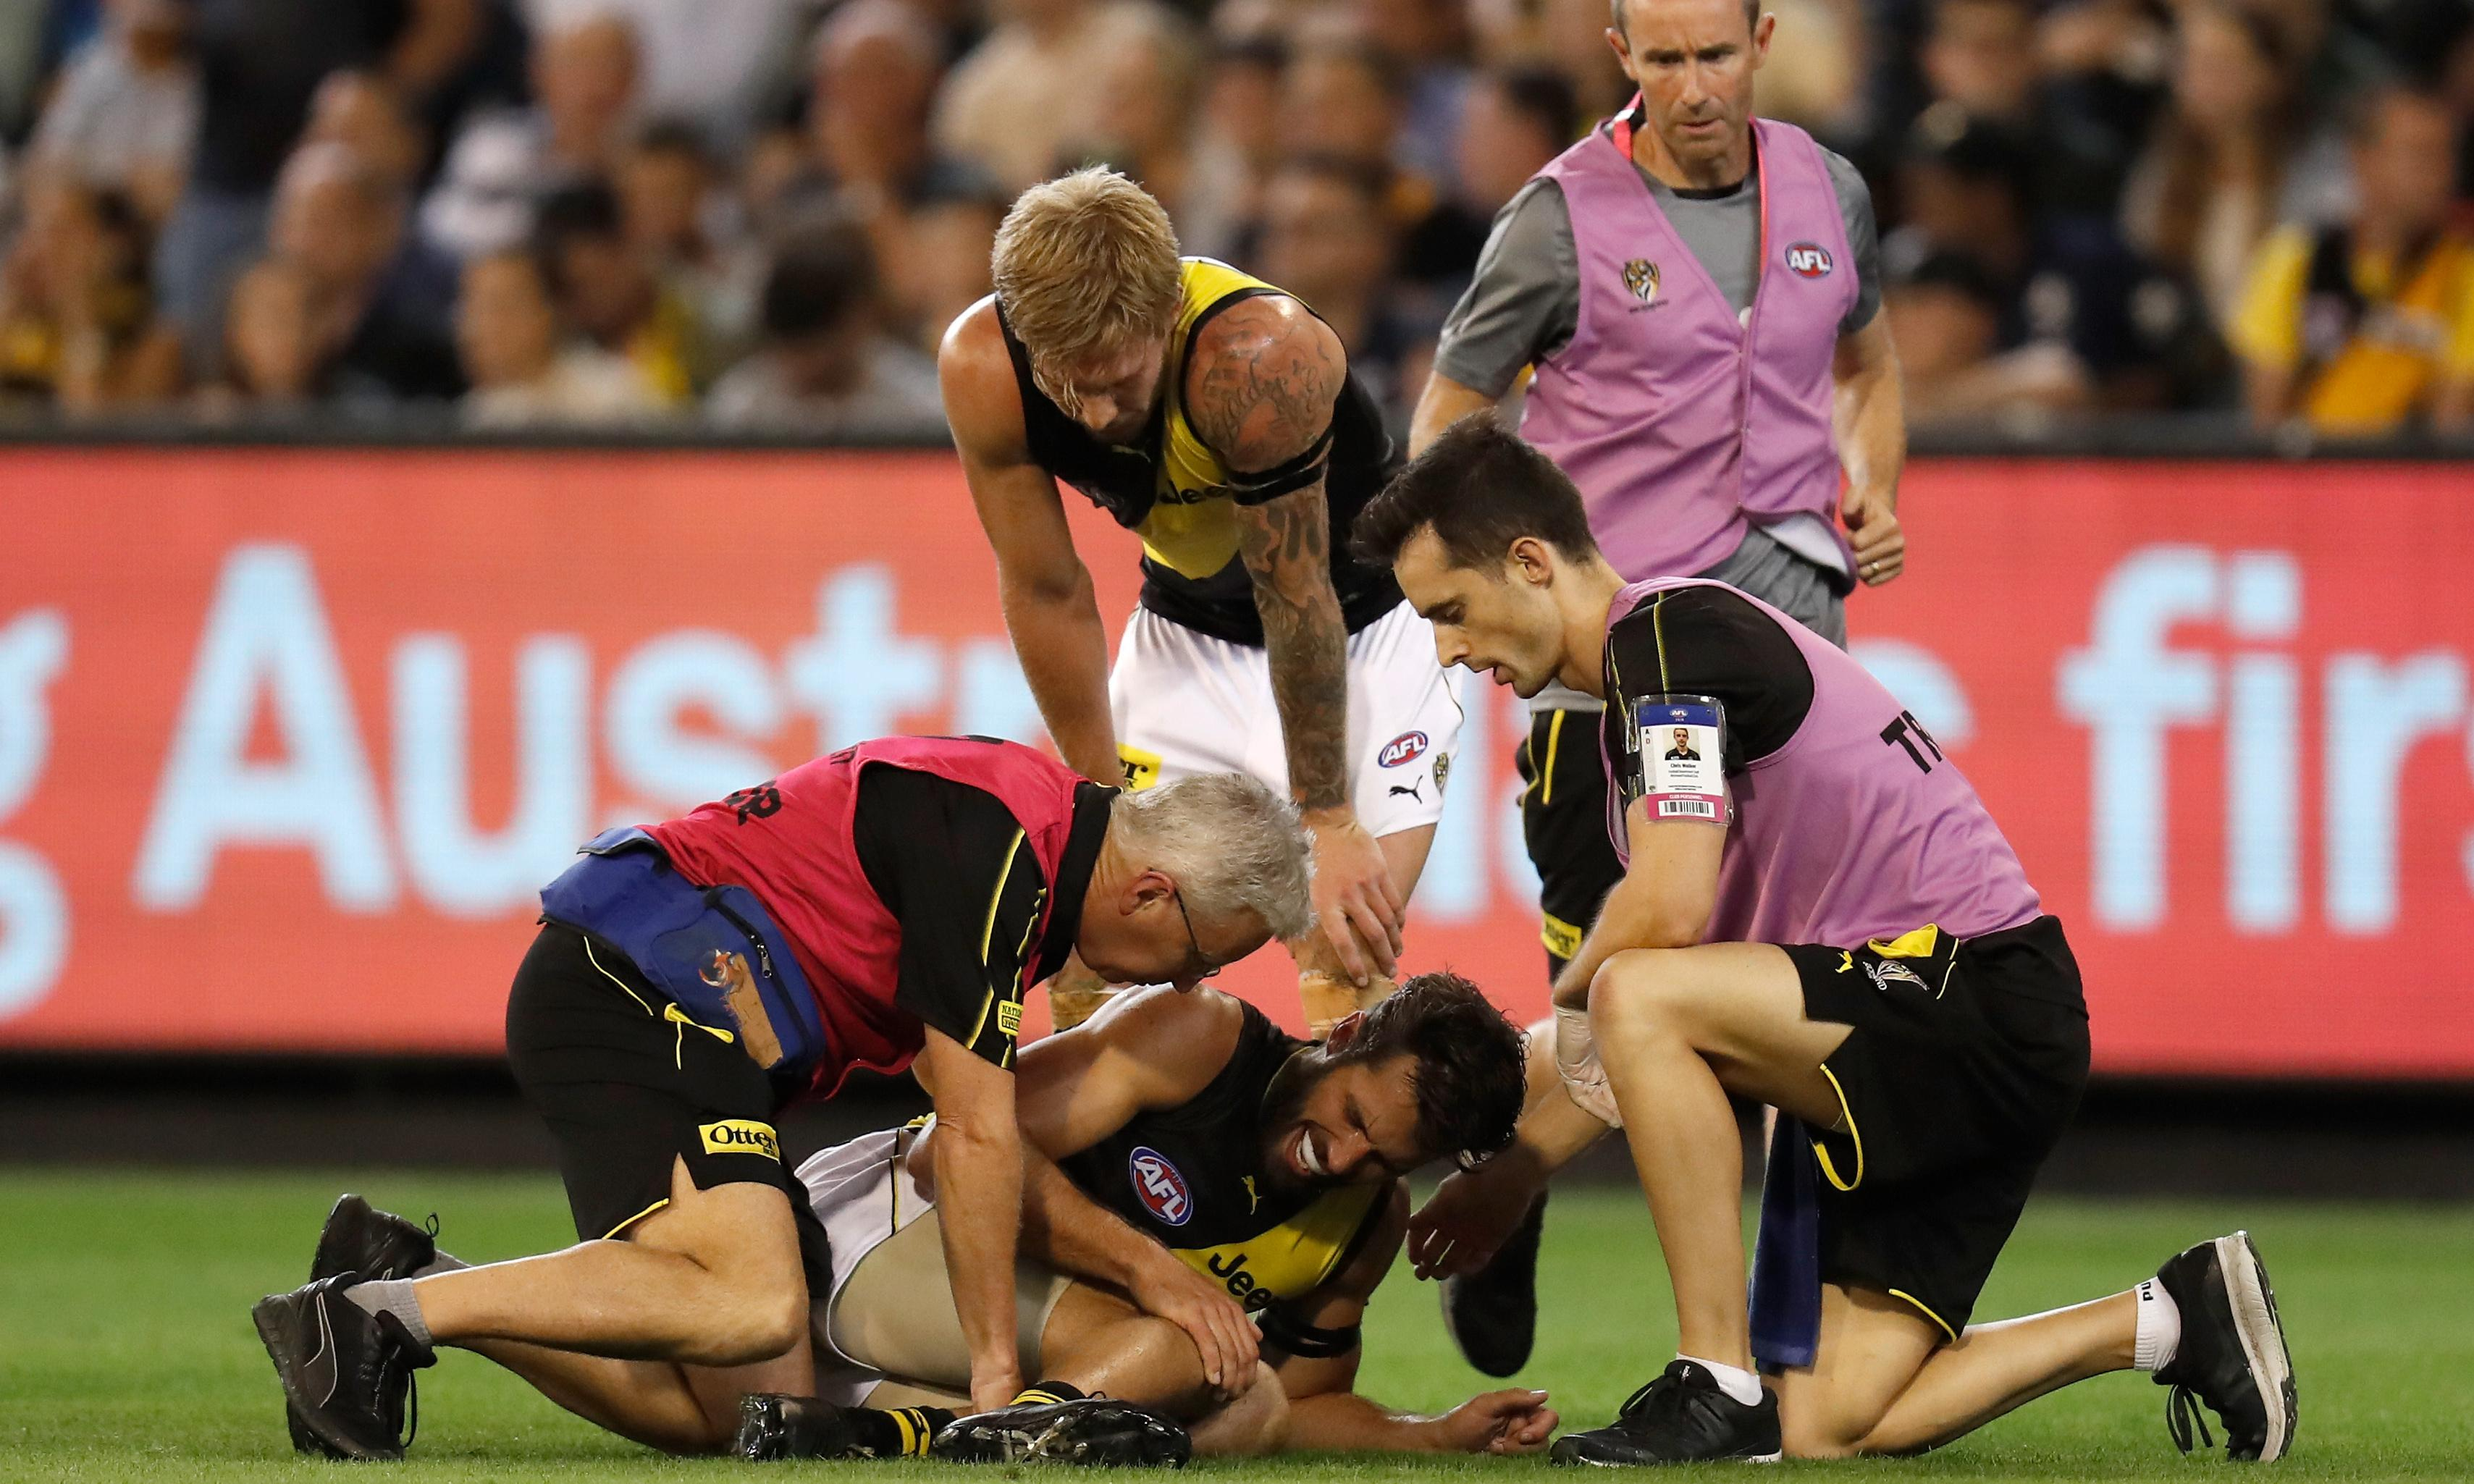 Richmond's charmed life ends with Alex Rance to have knee reconstruction